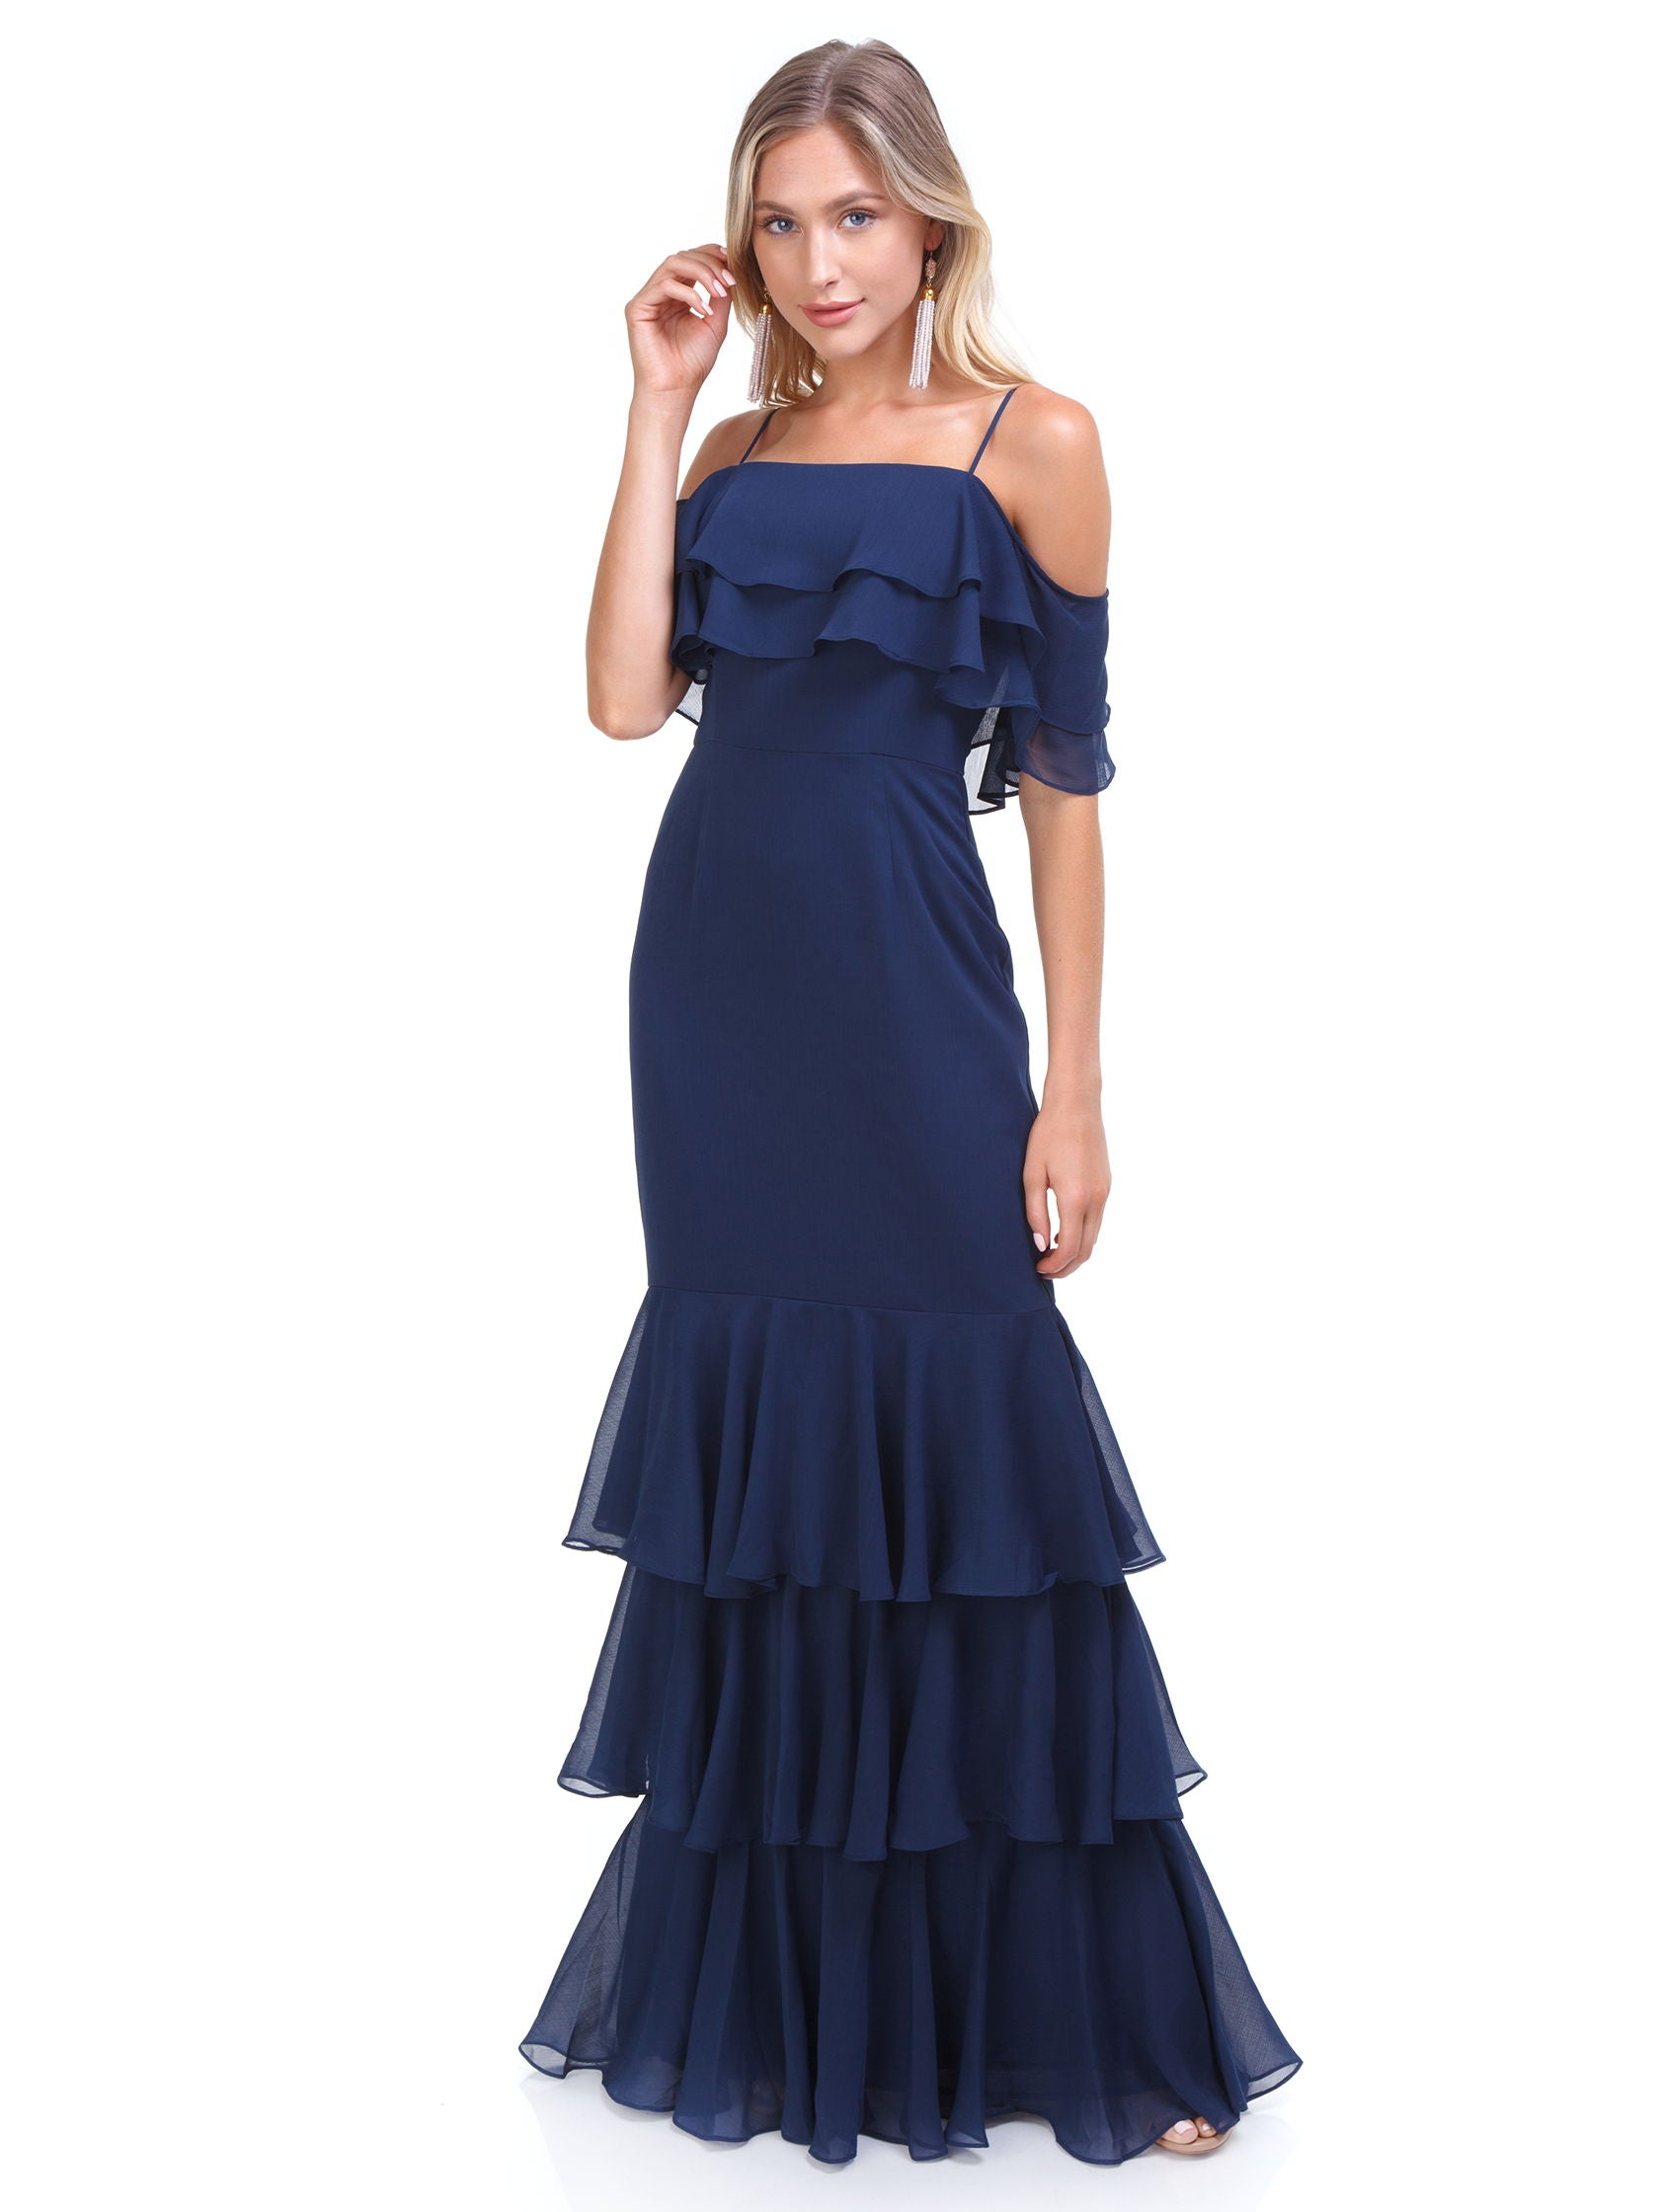 f8996d0d141 Girl outfit in a dress rental from WAYF called Lauren Off Shoulder Ruffle Maxi  Dress